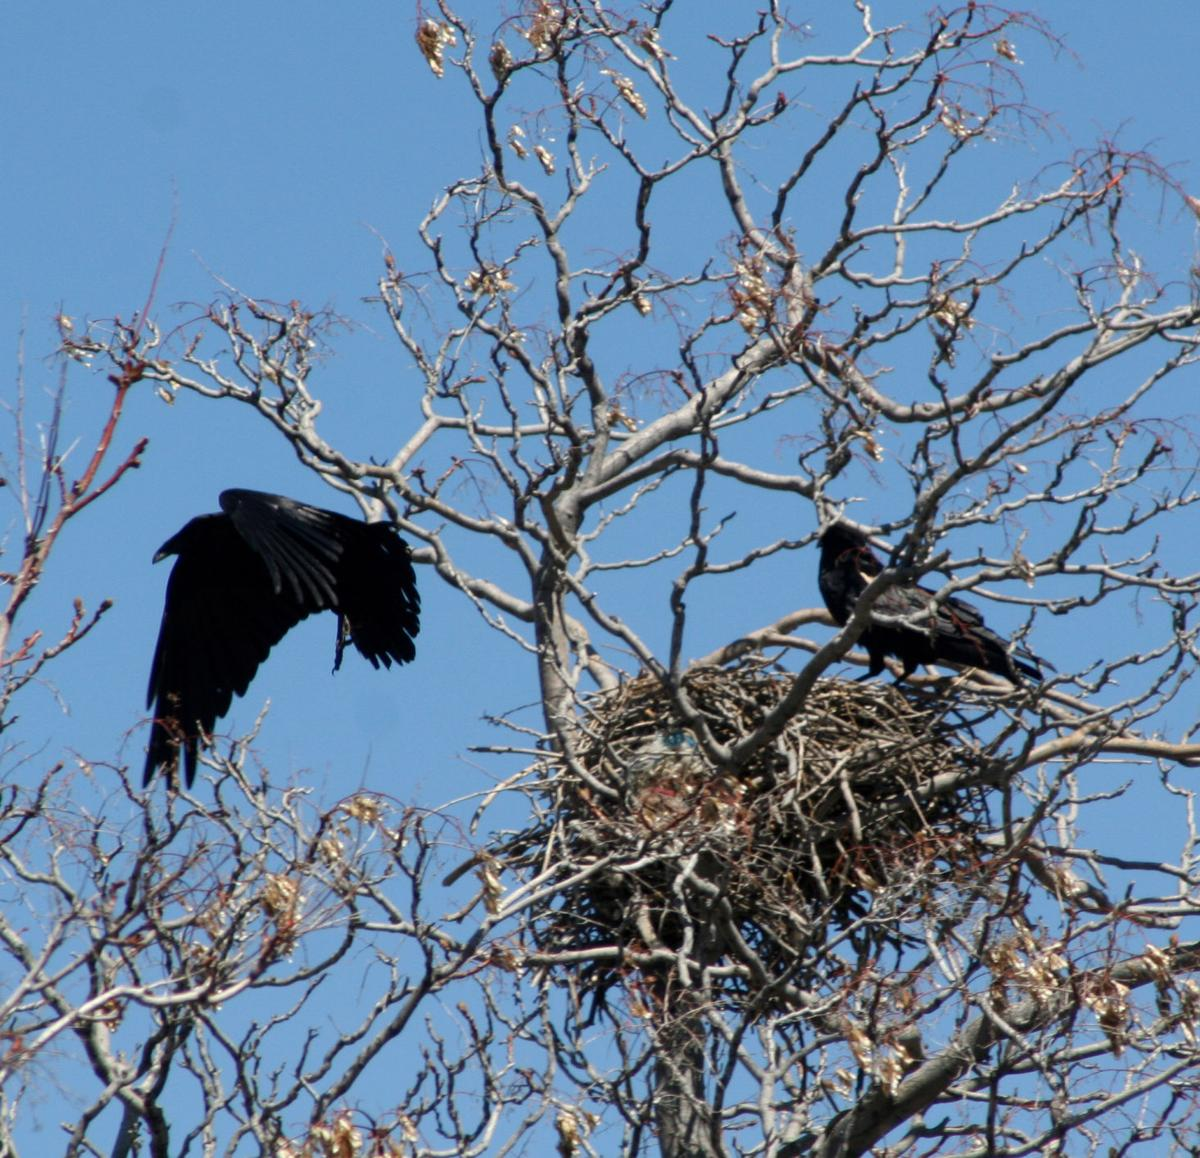 Pen in Hand: Man-made nesting material: ravens' nest found with more